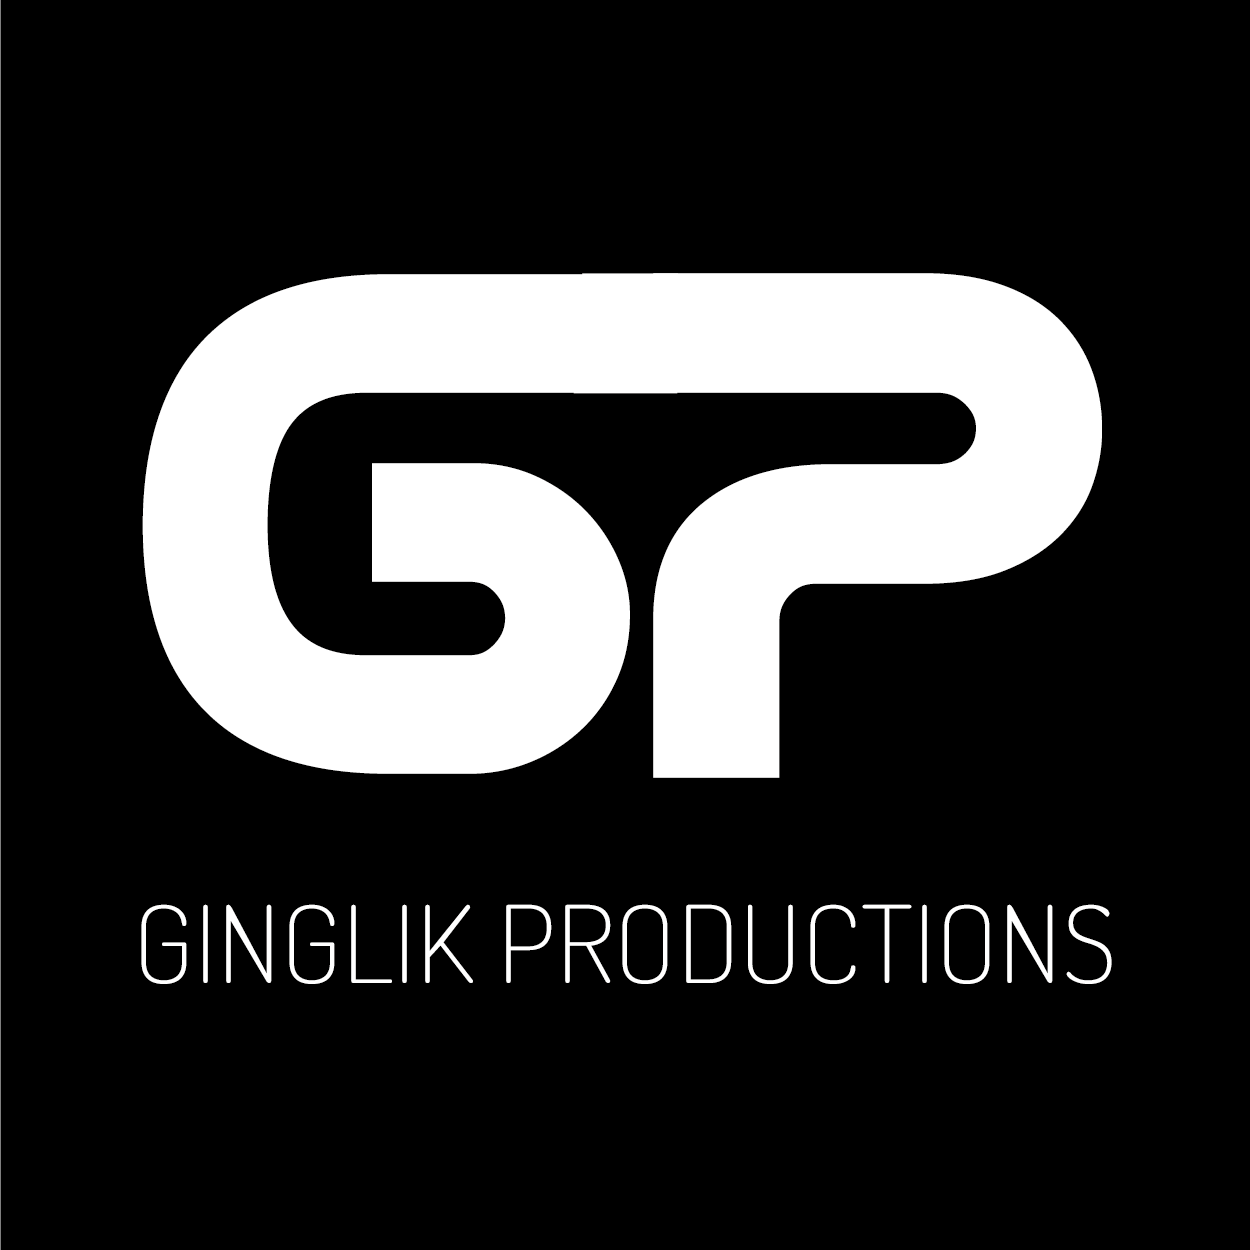 Ginglik Productions